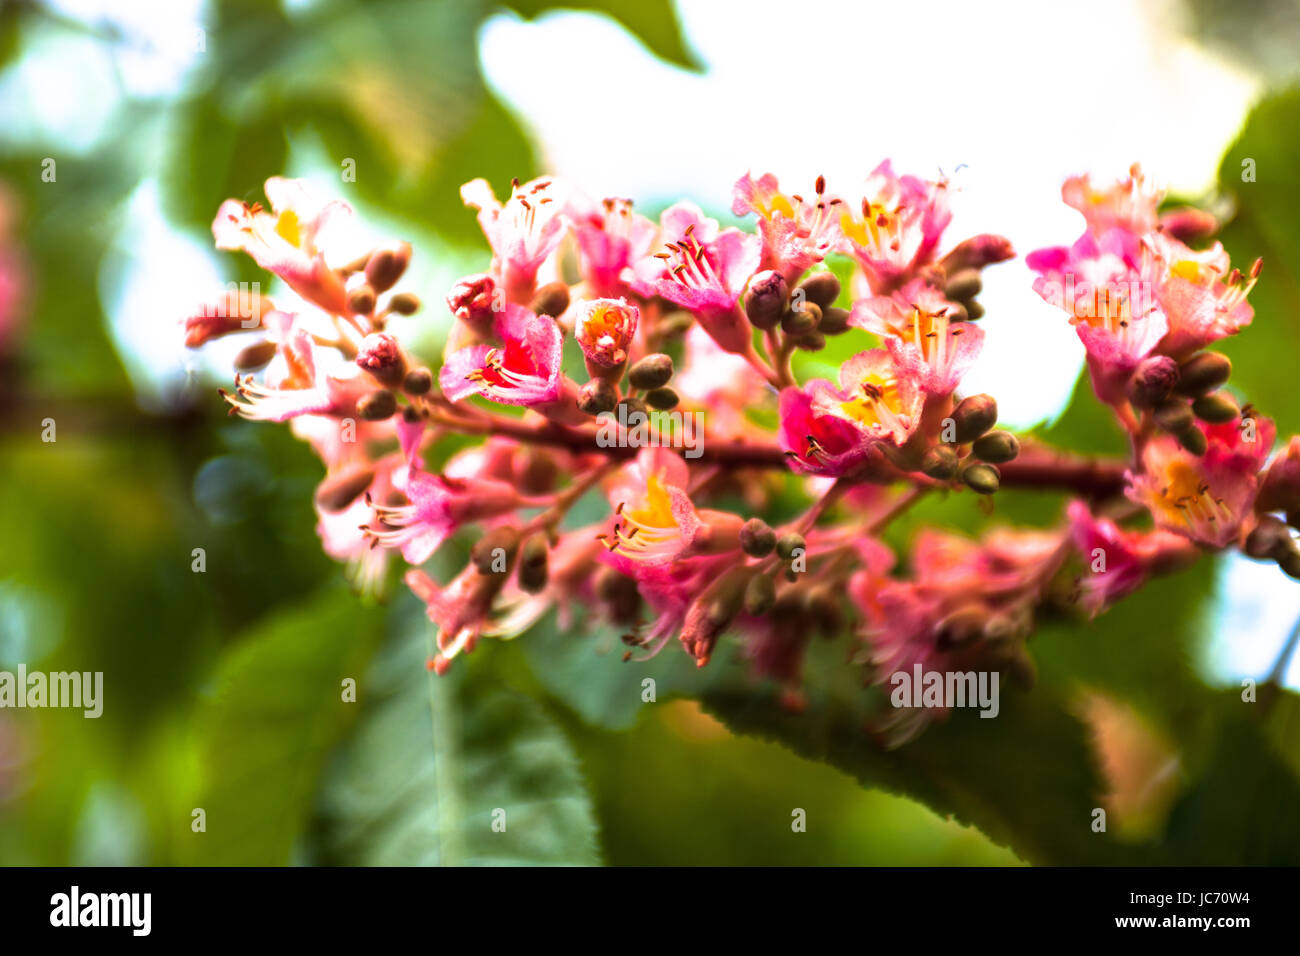 Bunch of pink flowers of the horse chestnut tree stock photo bunch of pink flowers of the horse chestnut tree mightylinksfo